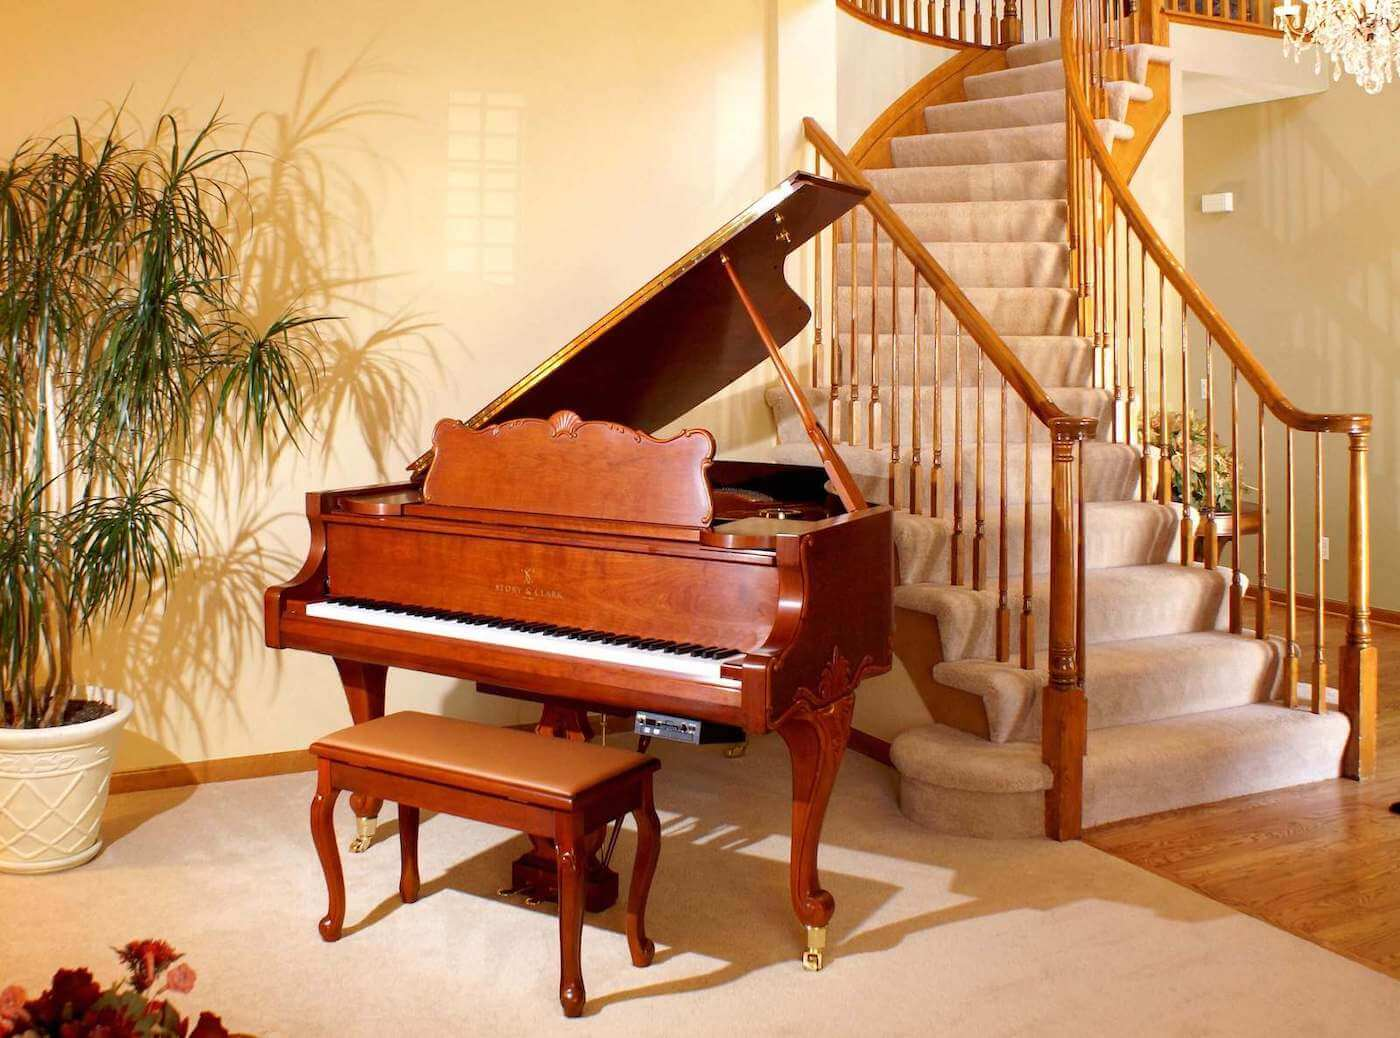 Piano under the stairs_25